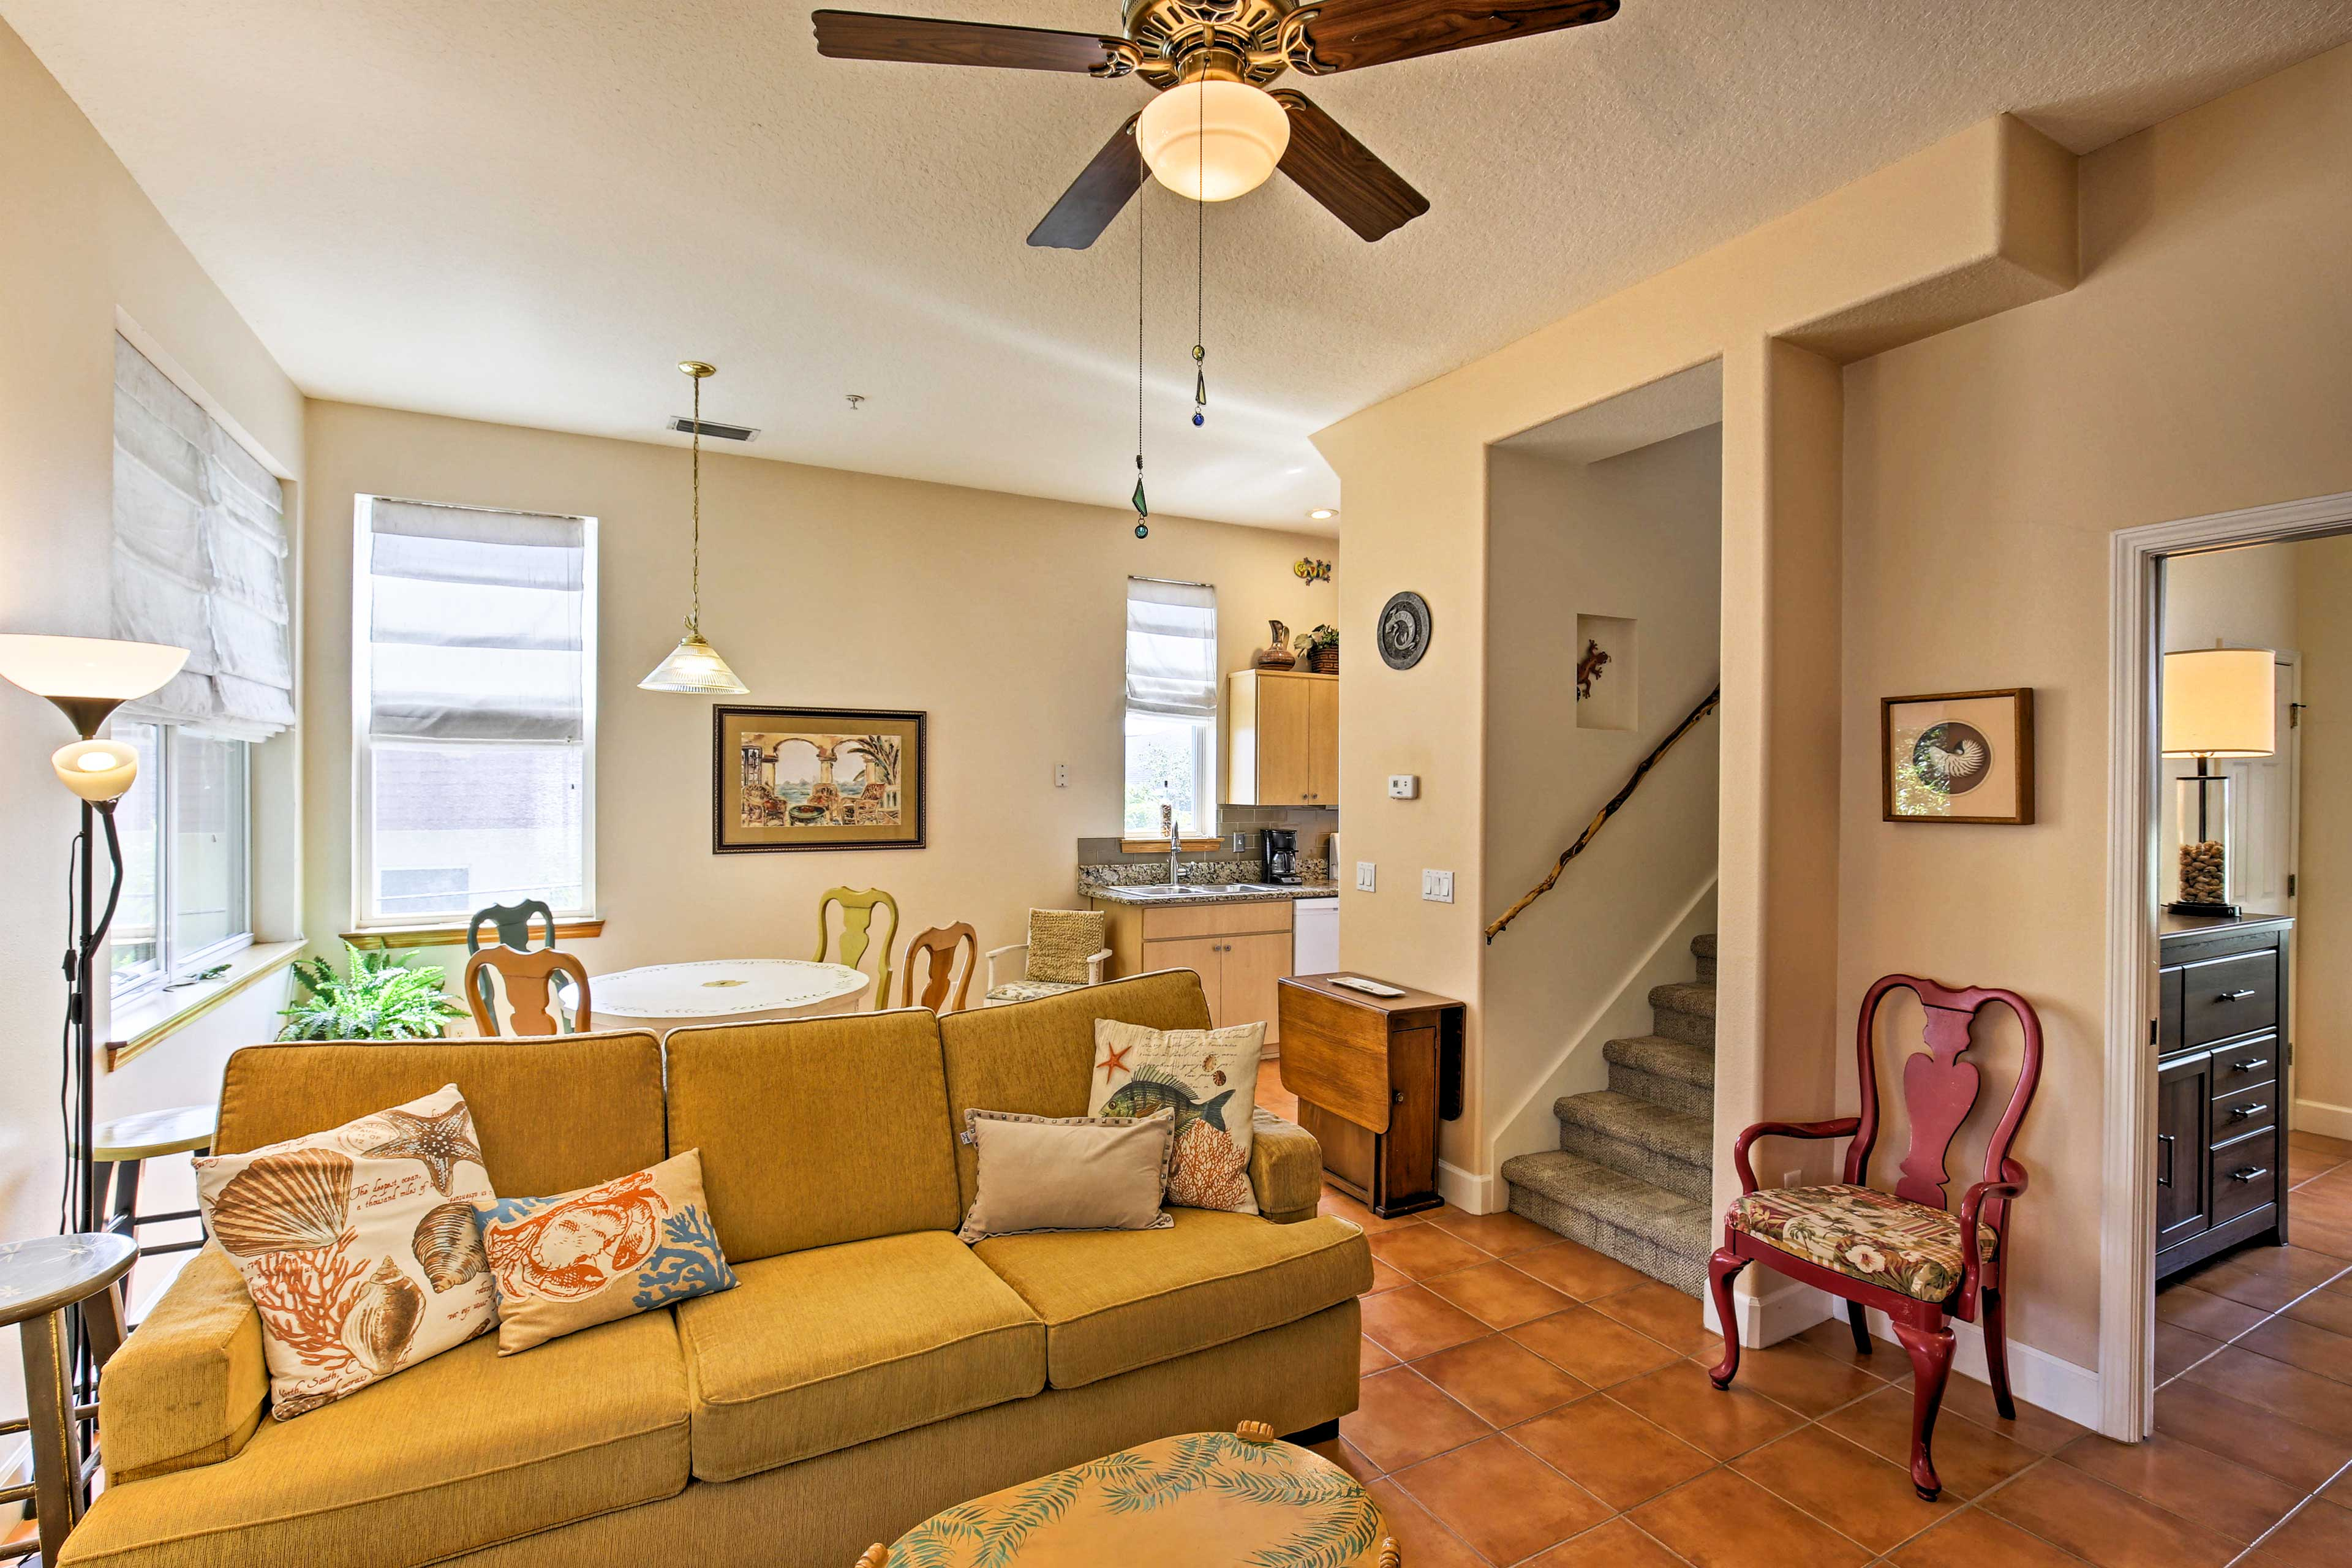 The open floor plan gives the condo an inviting ambiance.